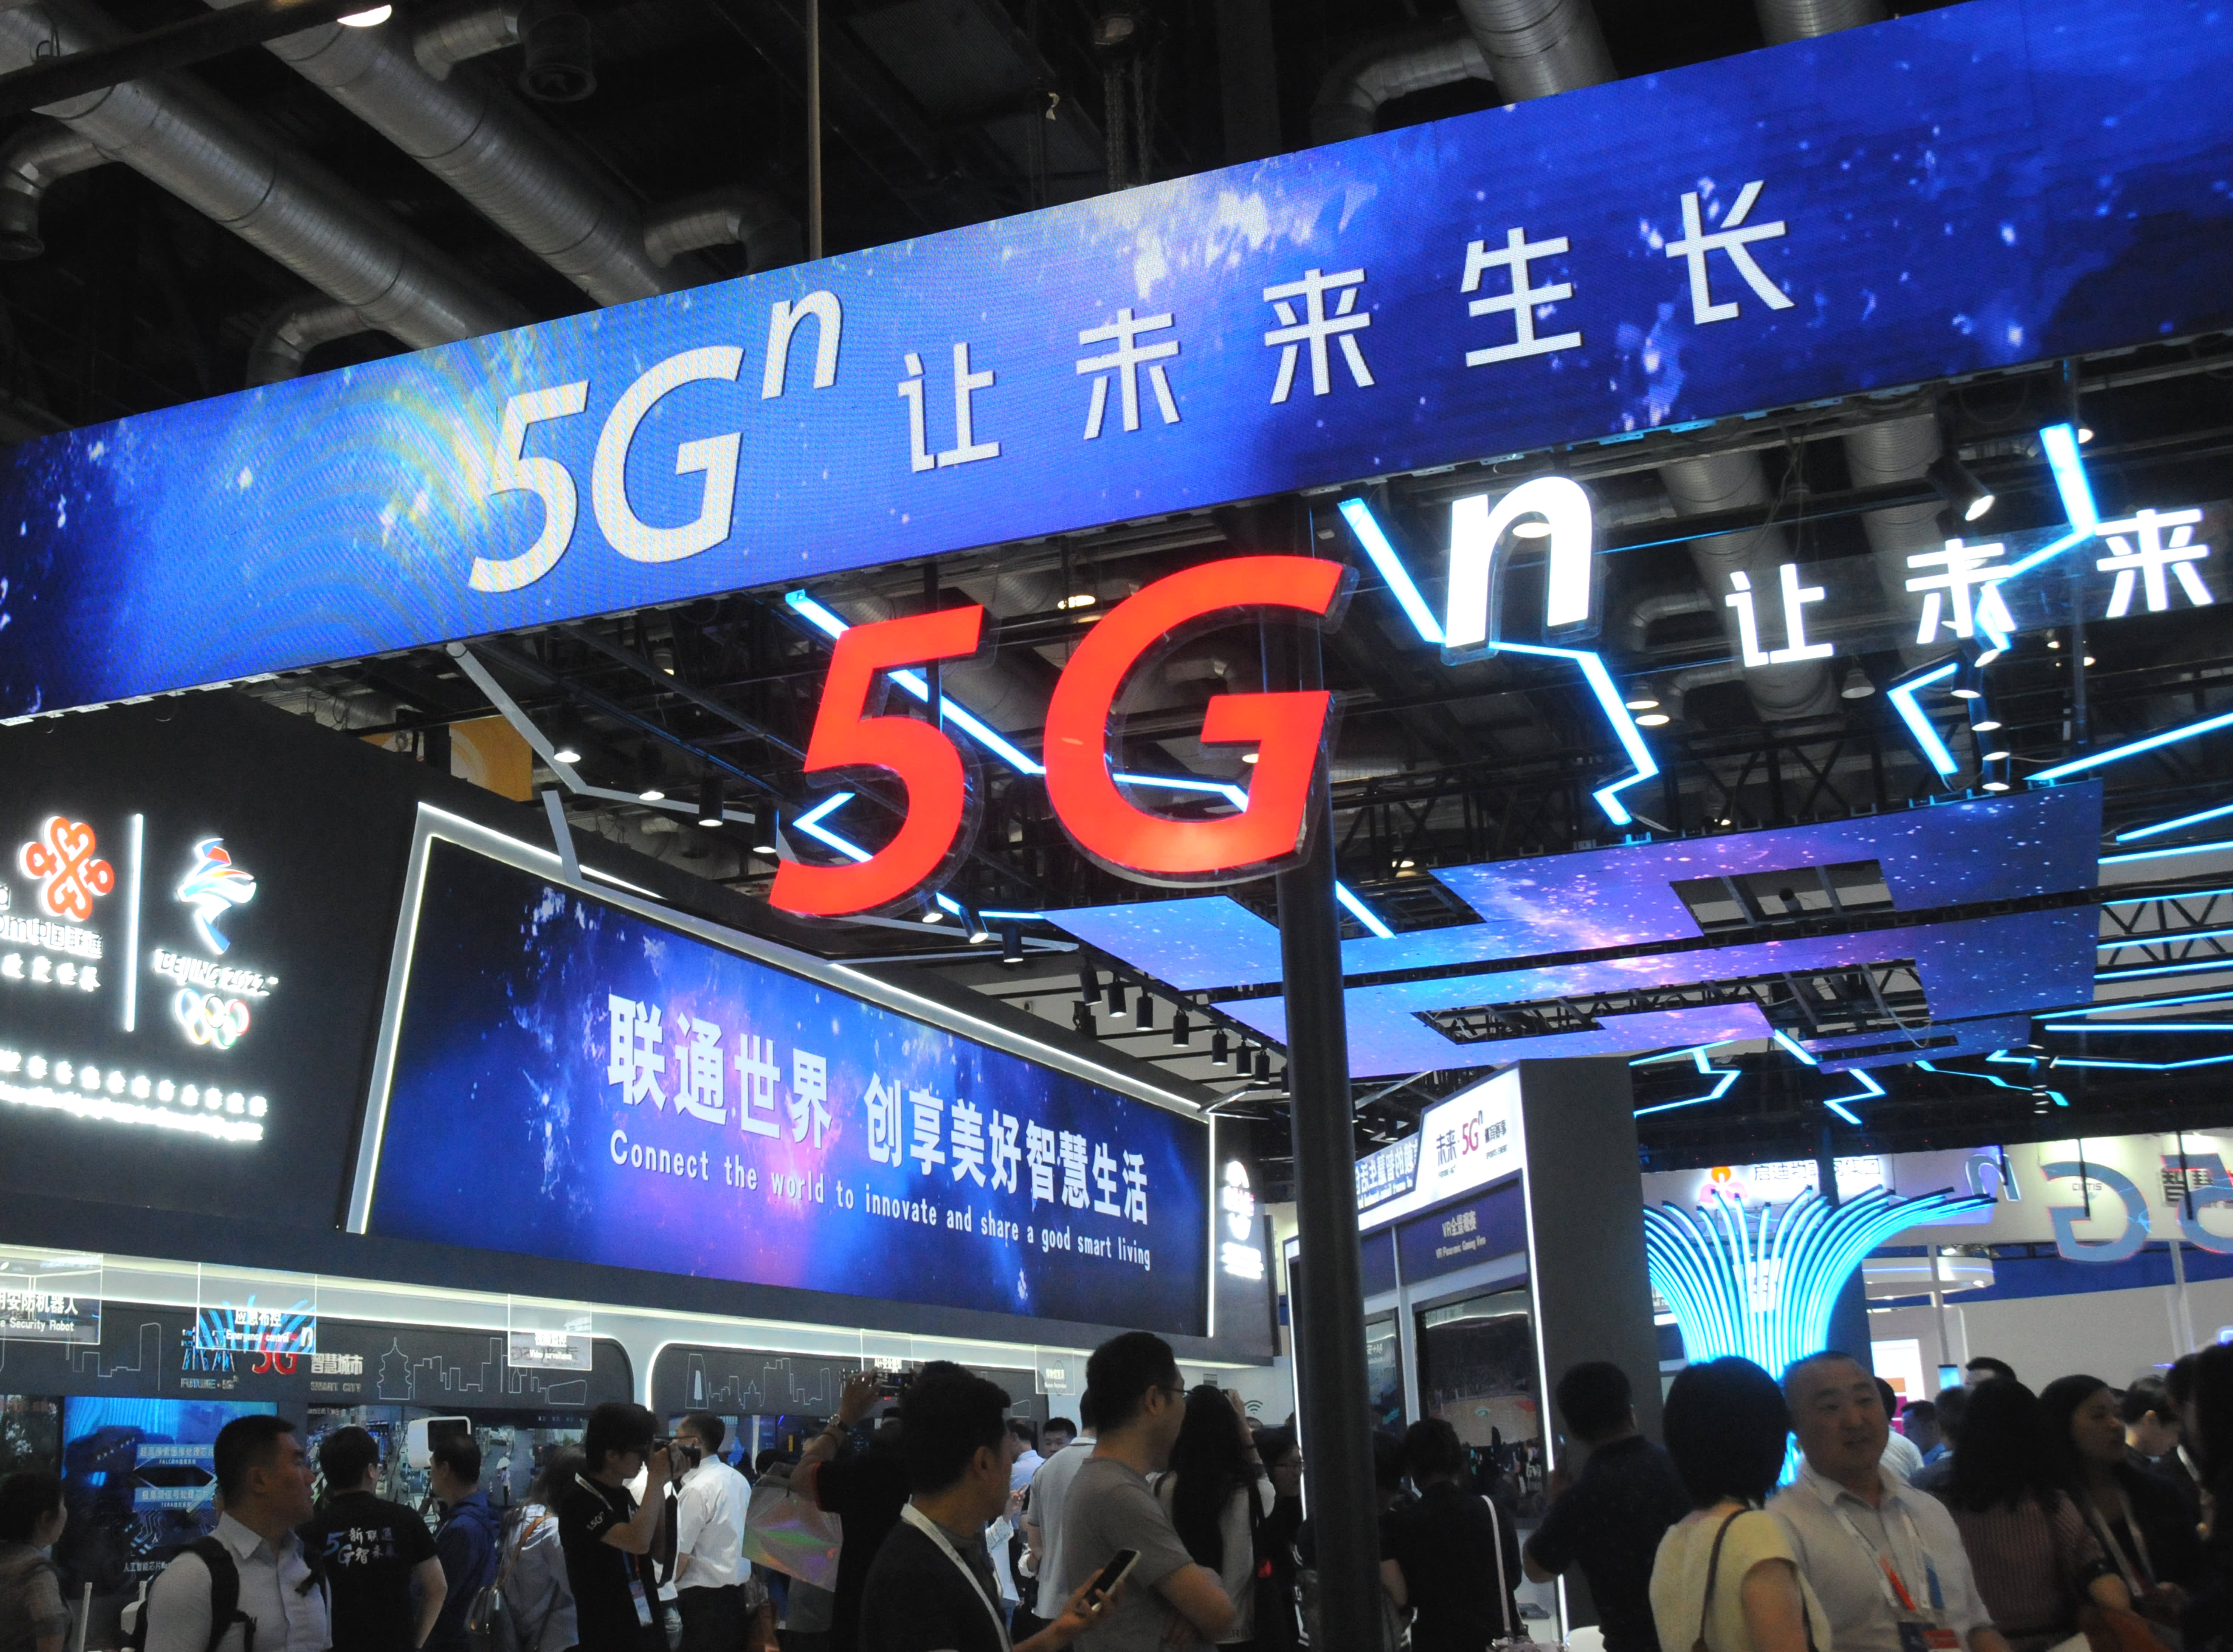 Race for 5G heats up: China's next-generation networks go online for as low as $18